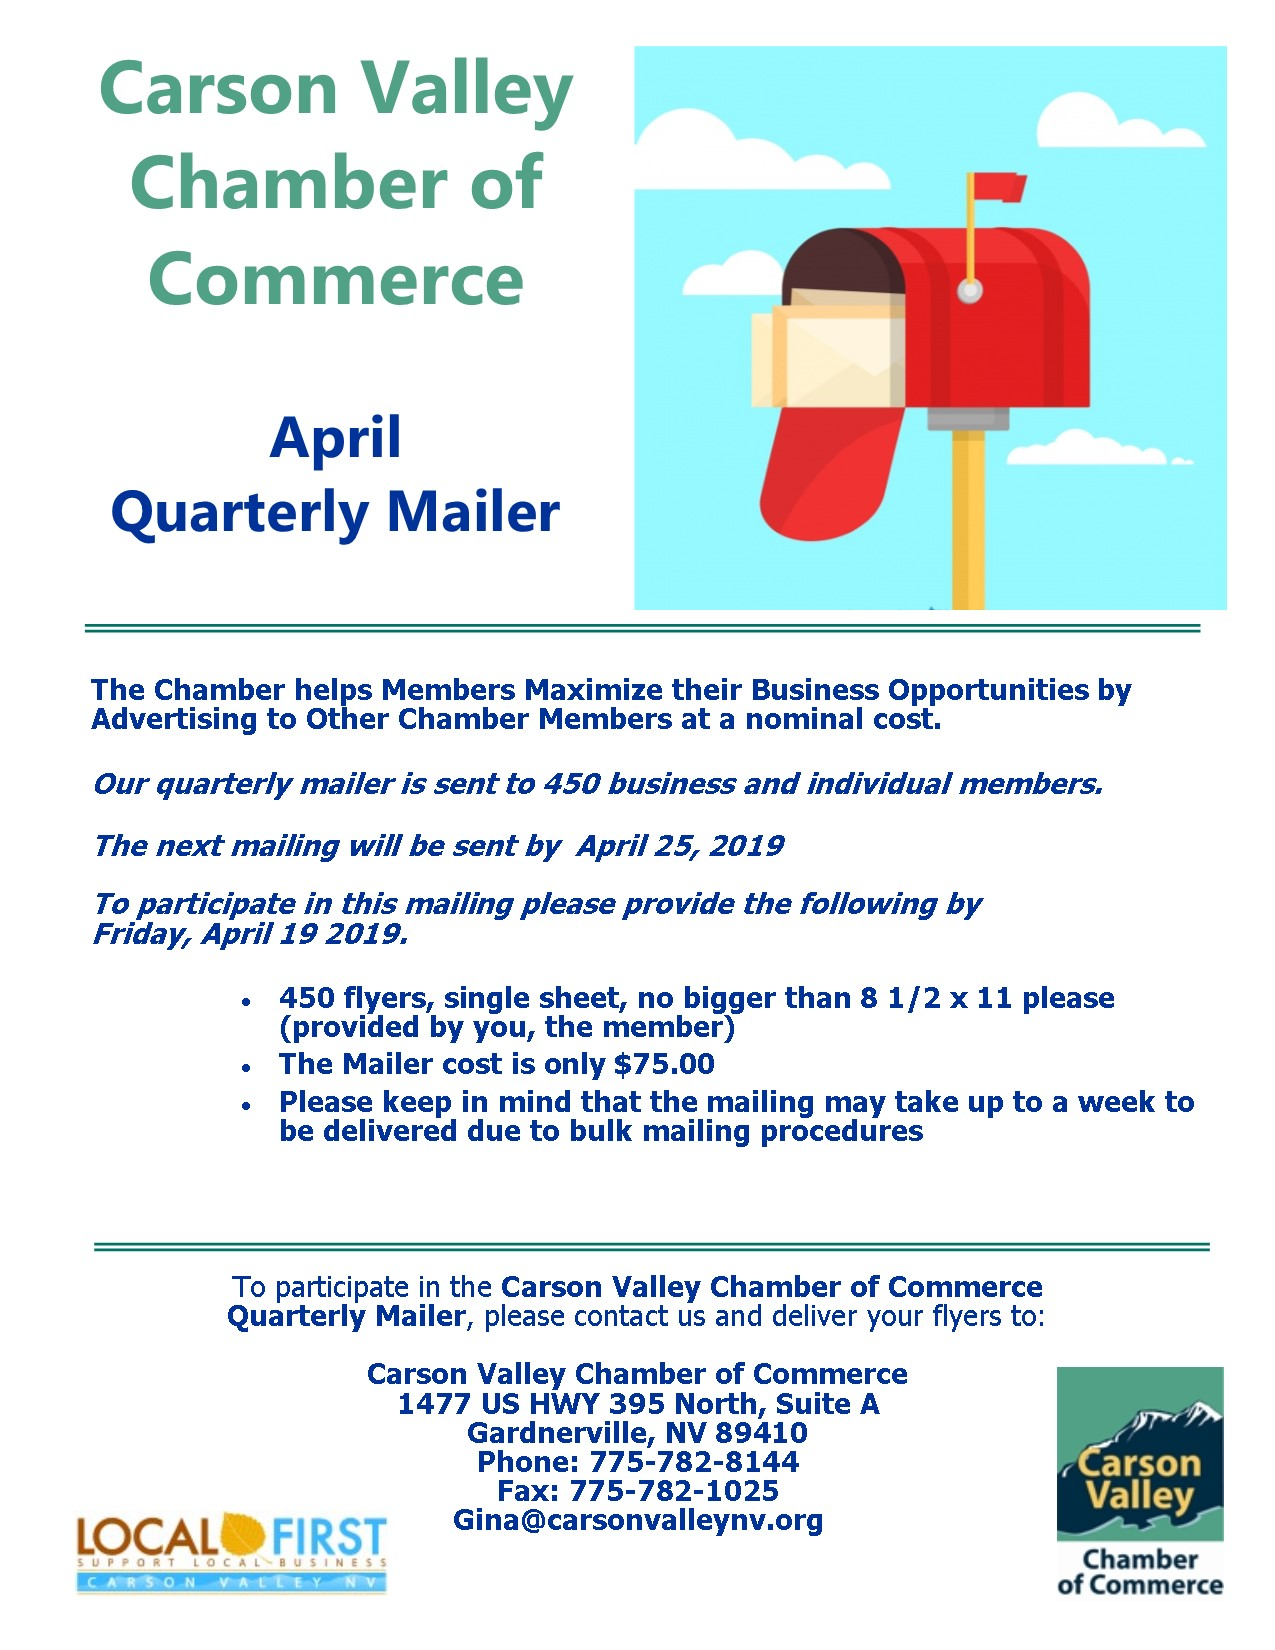 April-Quarterly-Mailer-Flyer-2019.jpg